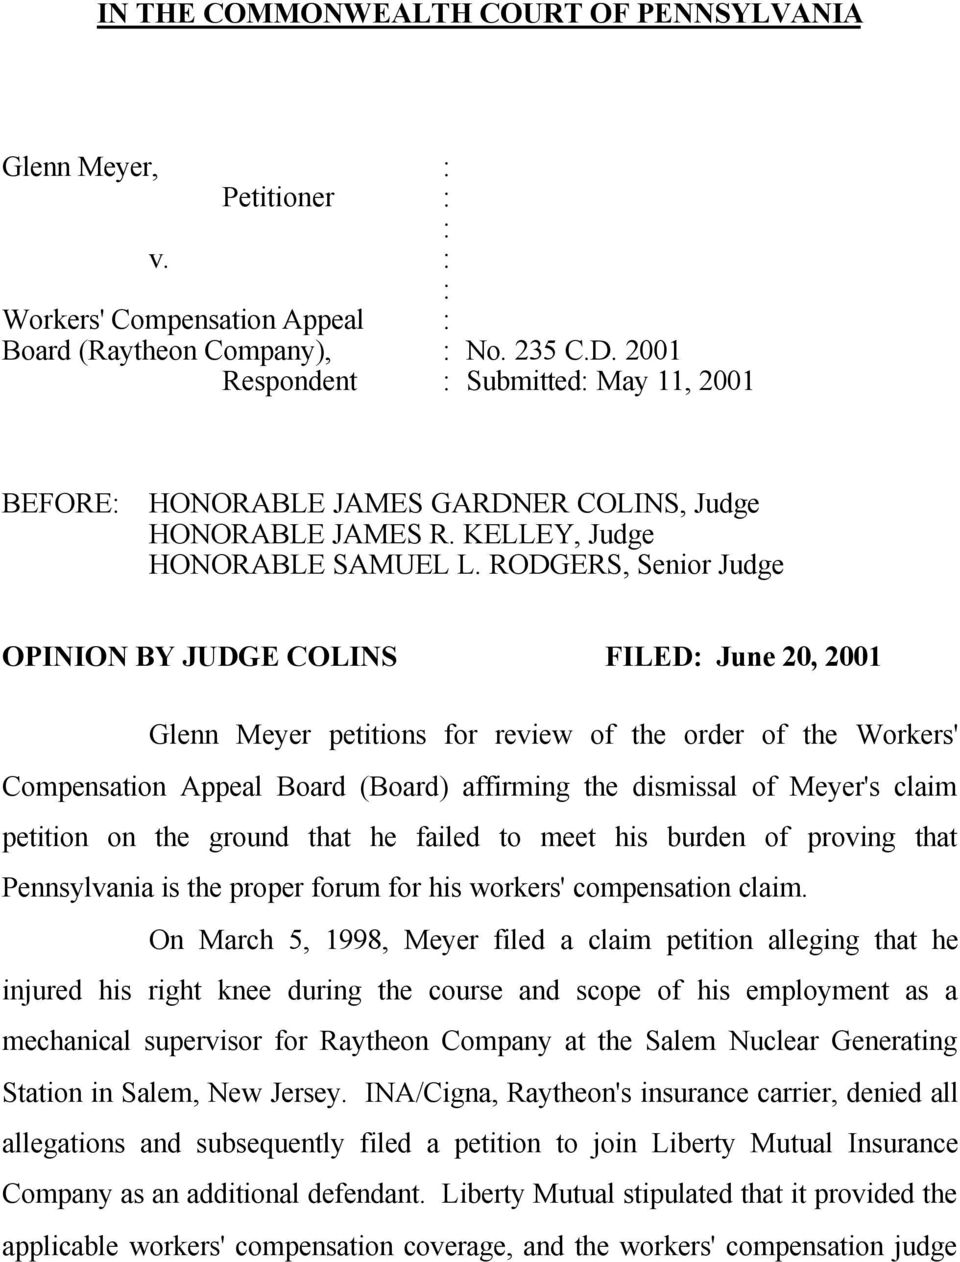 RODGERS, Senior Judge OPINION BY JUDGE COLINS FILED June 20, 2001 Glenn Meyer petitions for review of the order of the Workers' Compensation Appeal Board (Board) affirming the dismissal of Meyer's